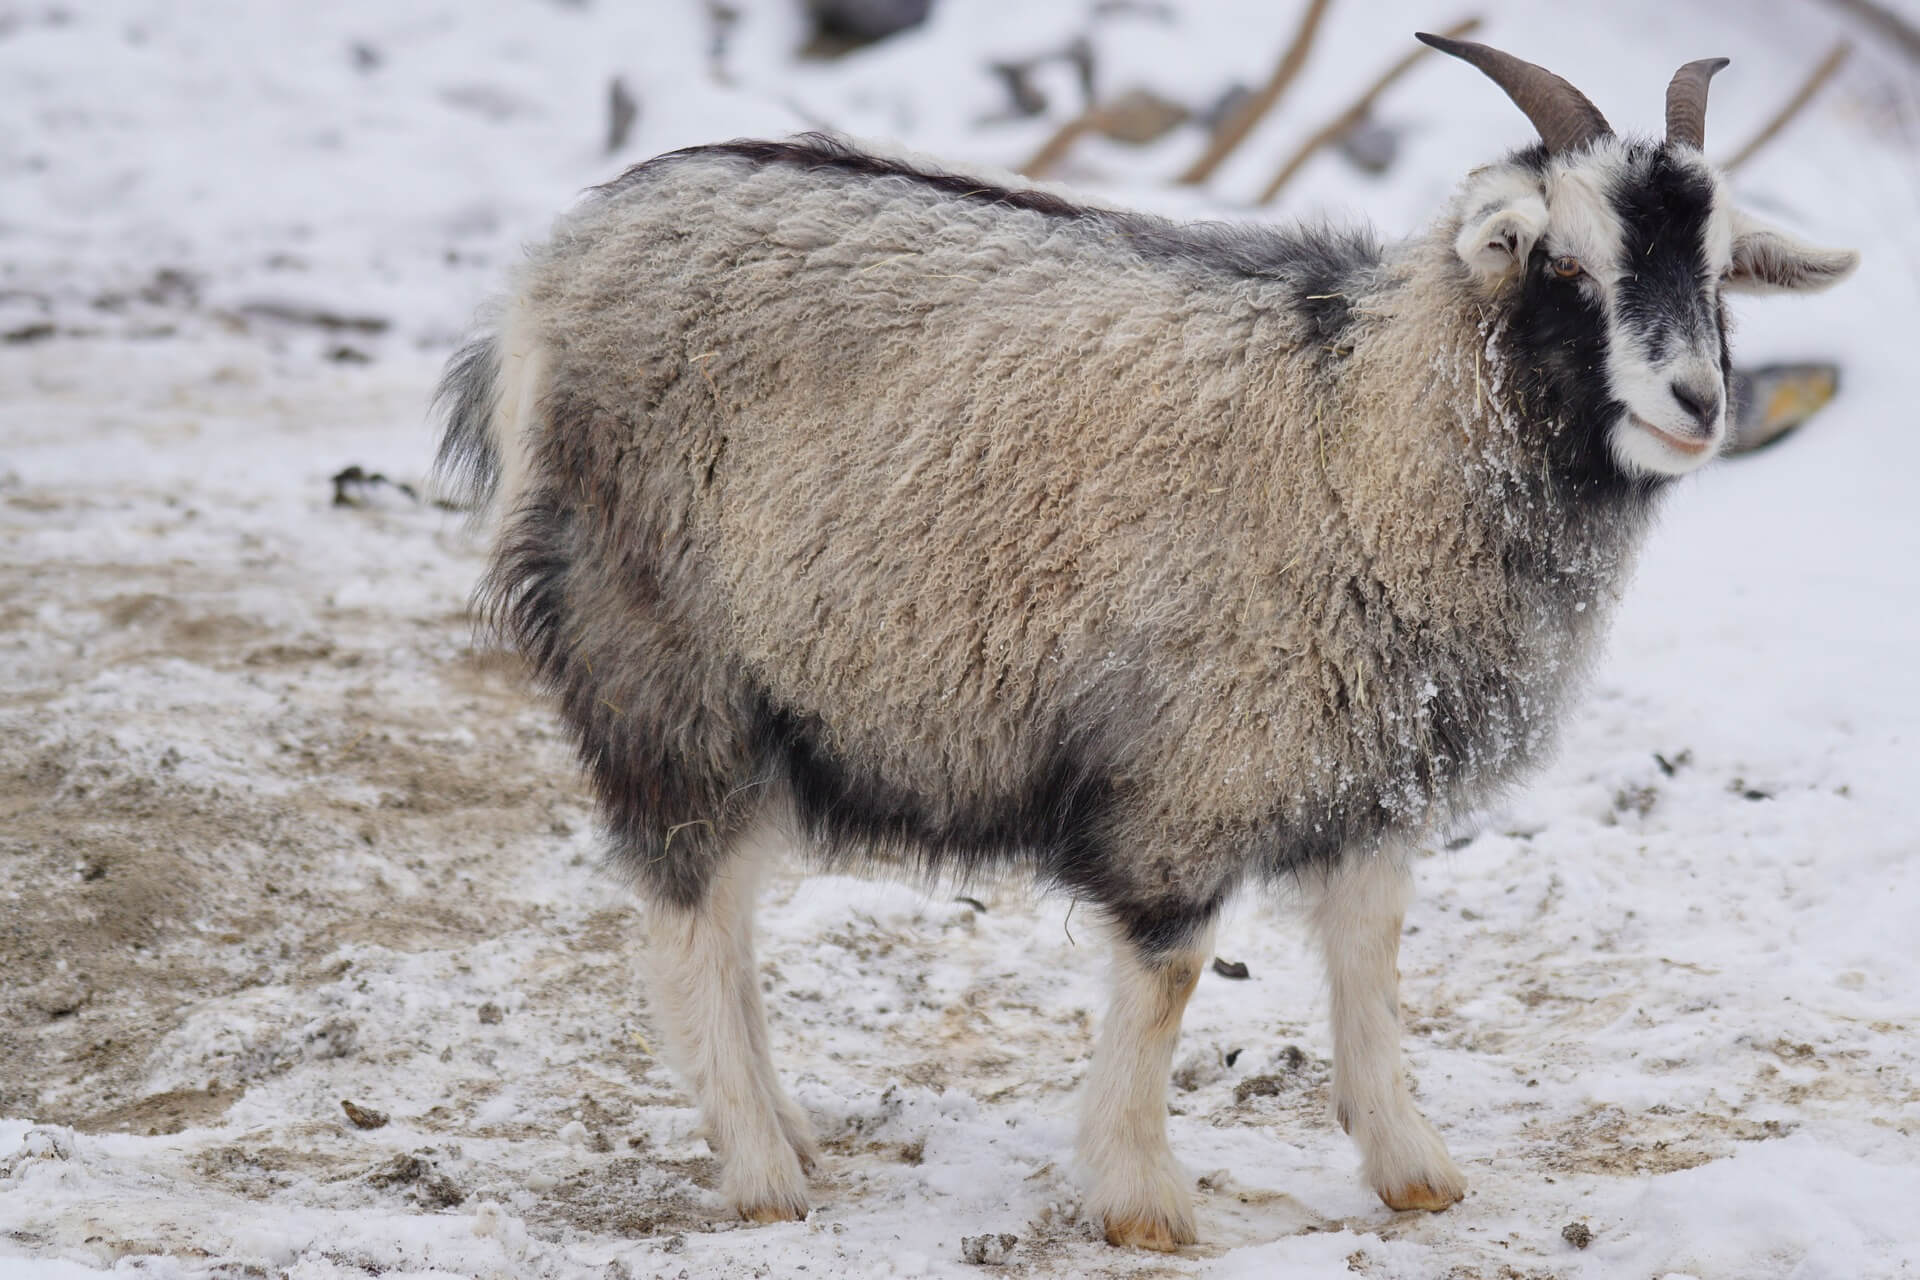 Cashmere goat is rare, so that's why cashmere is so expensive